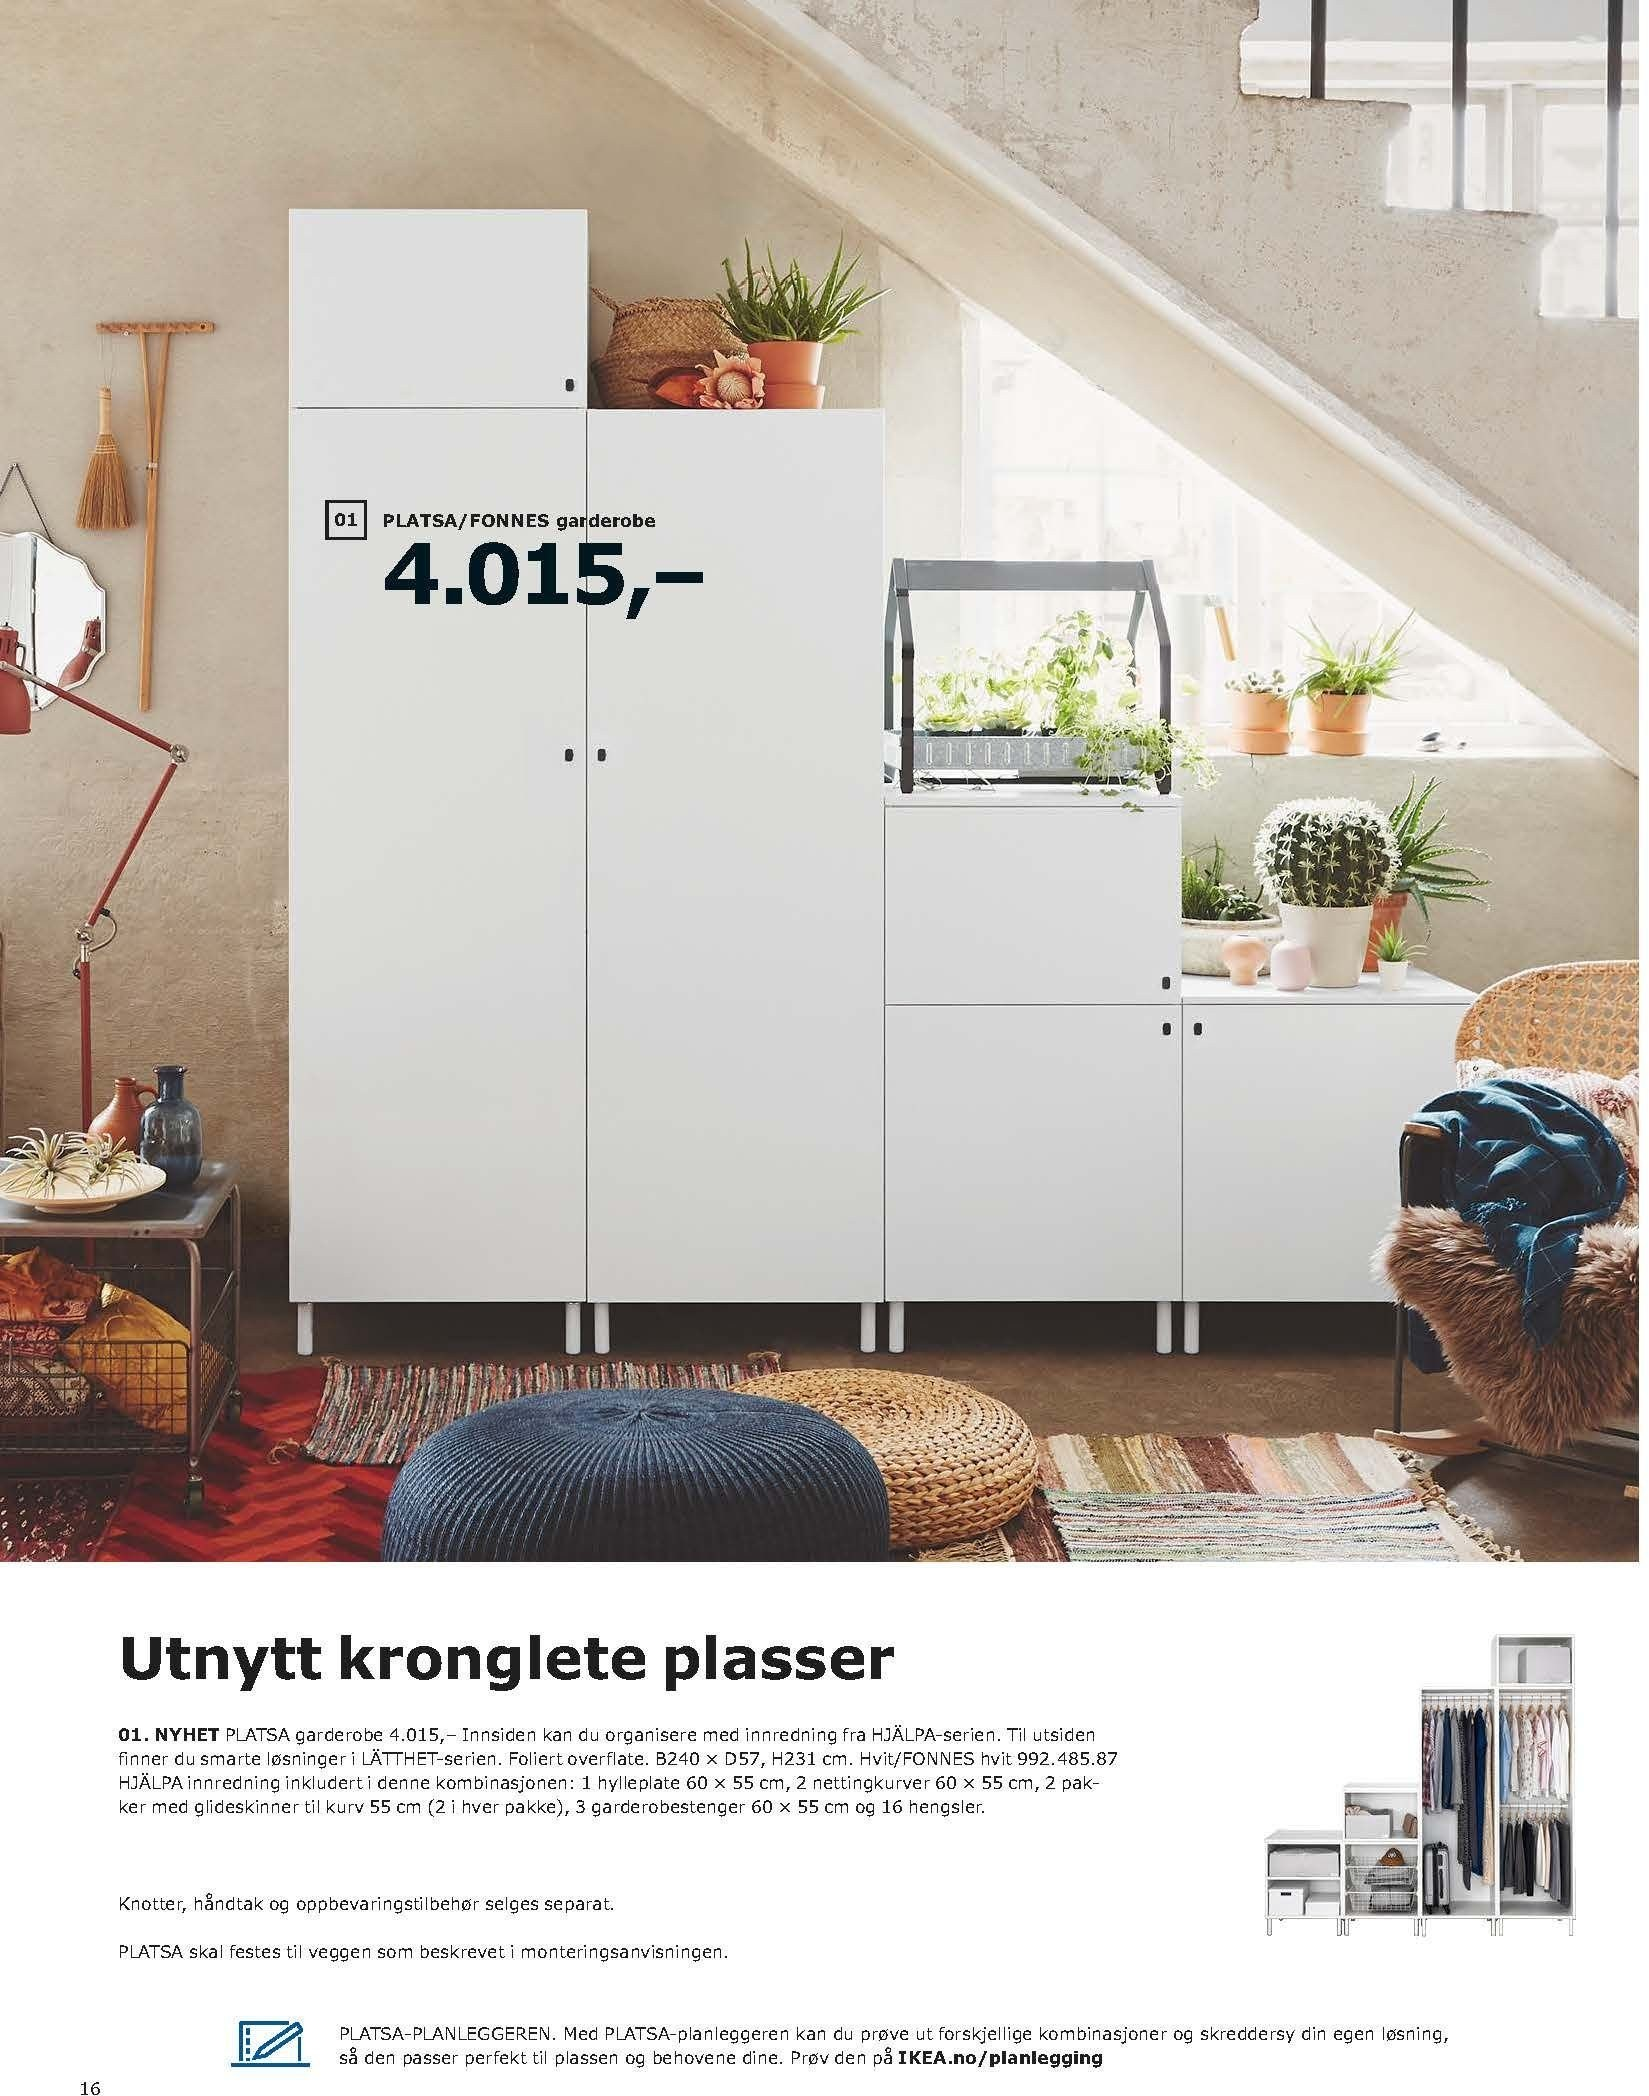 Kundeavis IKEA - 20.08.2018 - 11.08.2019. Side 16.